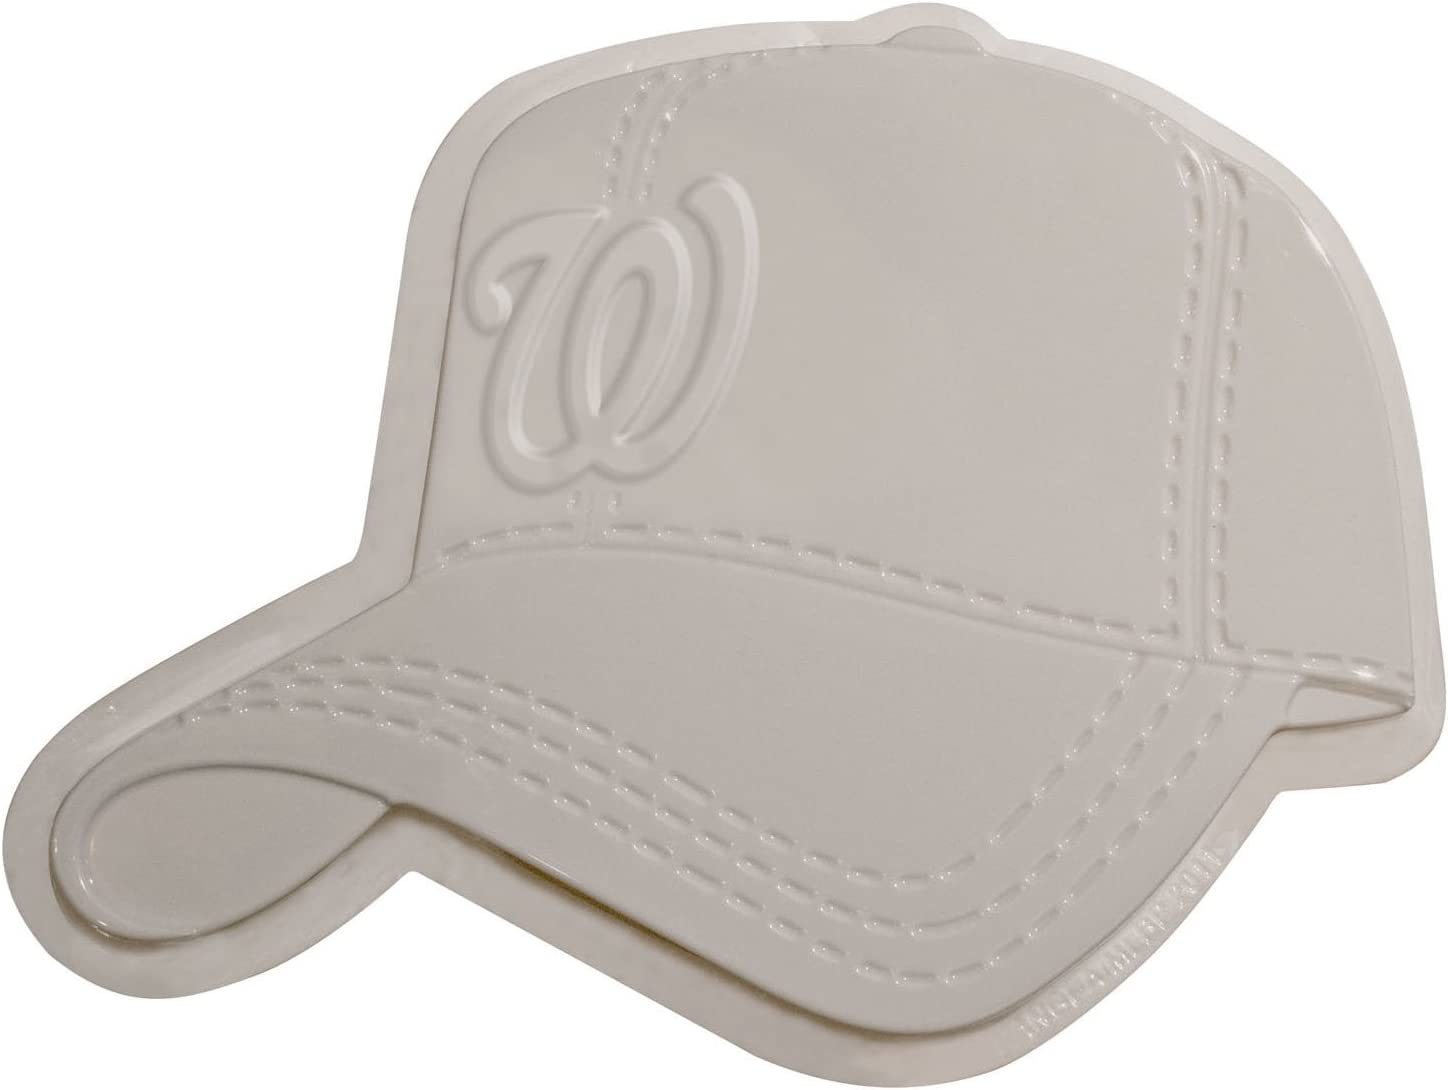 MLB Washington Nationals Fan Cakes Plastic C CPET Mesa Mall Heat Resistant High quality new